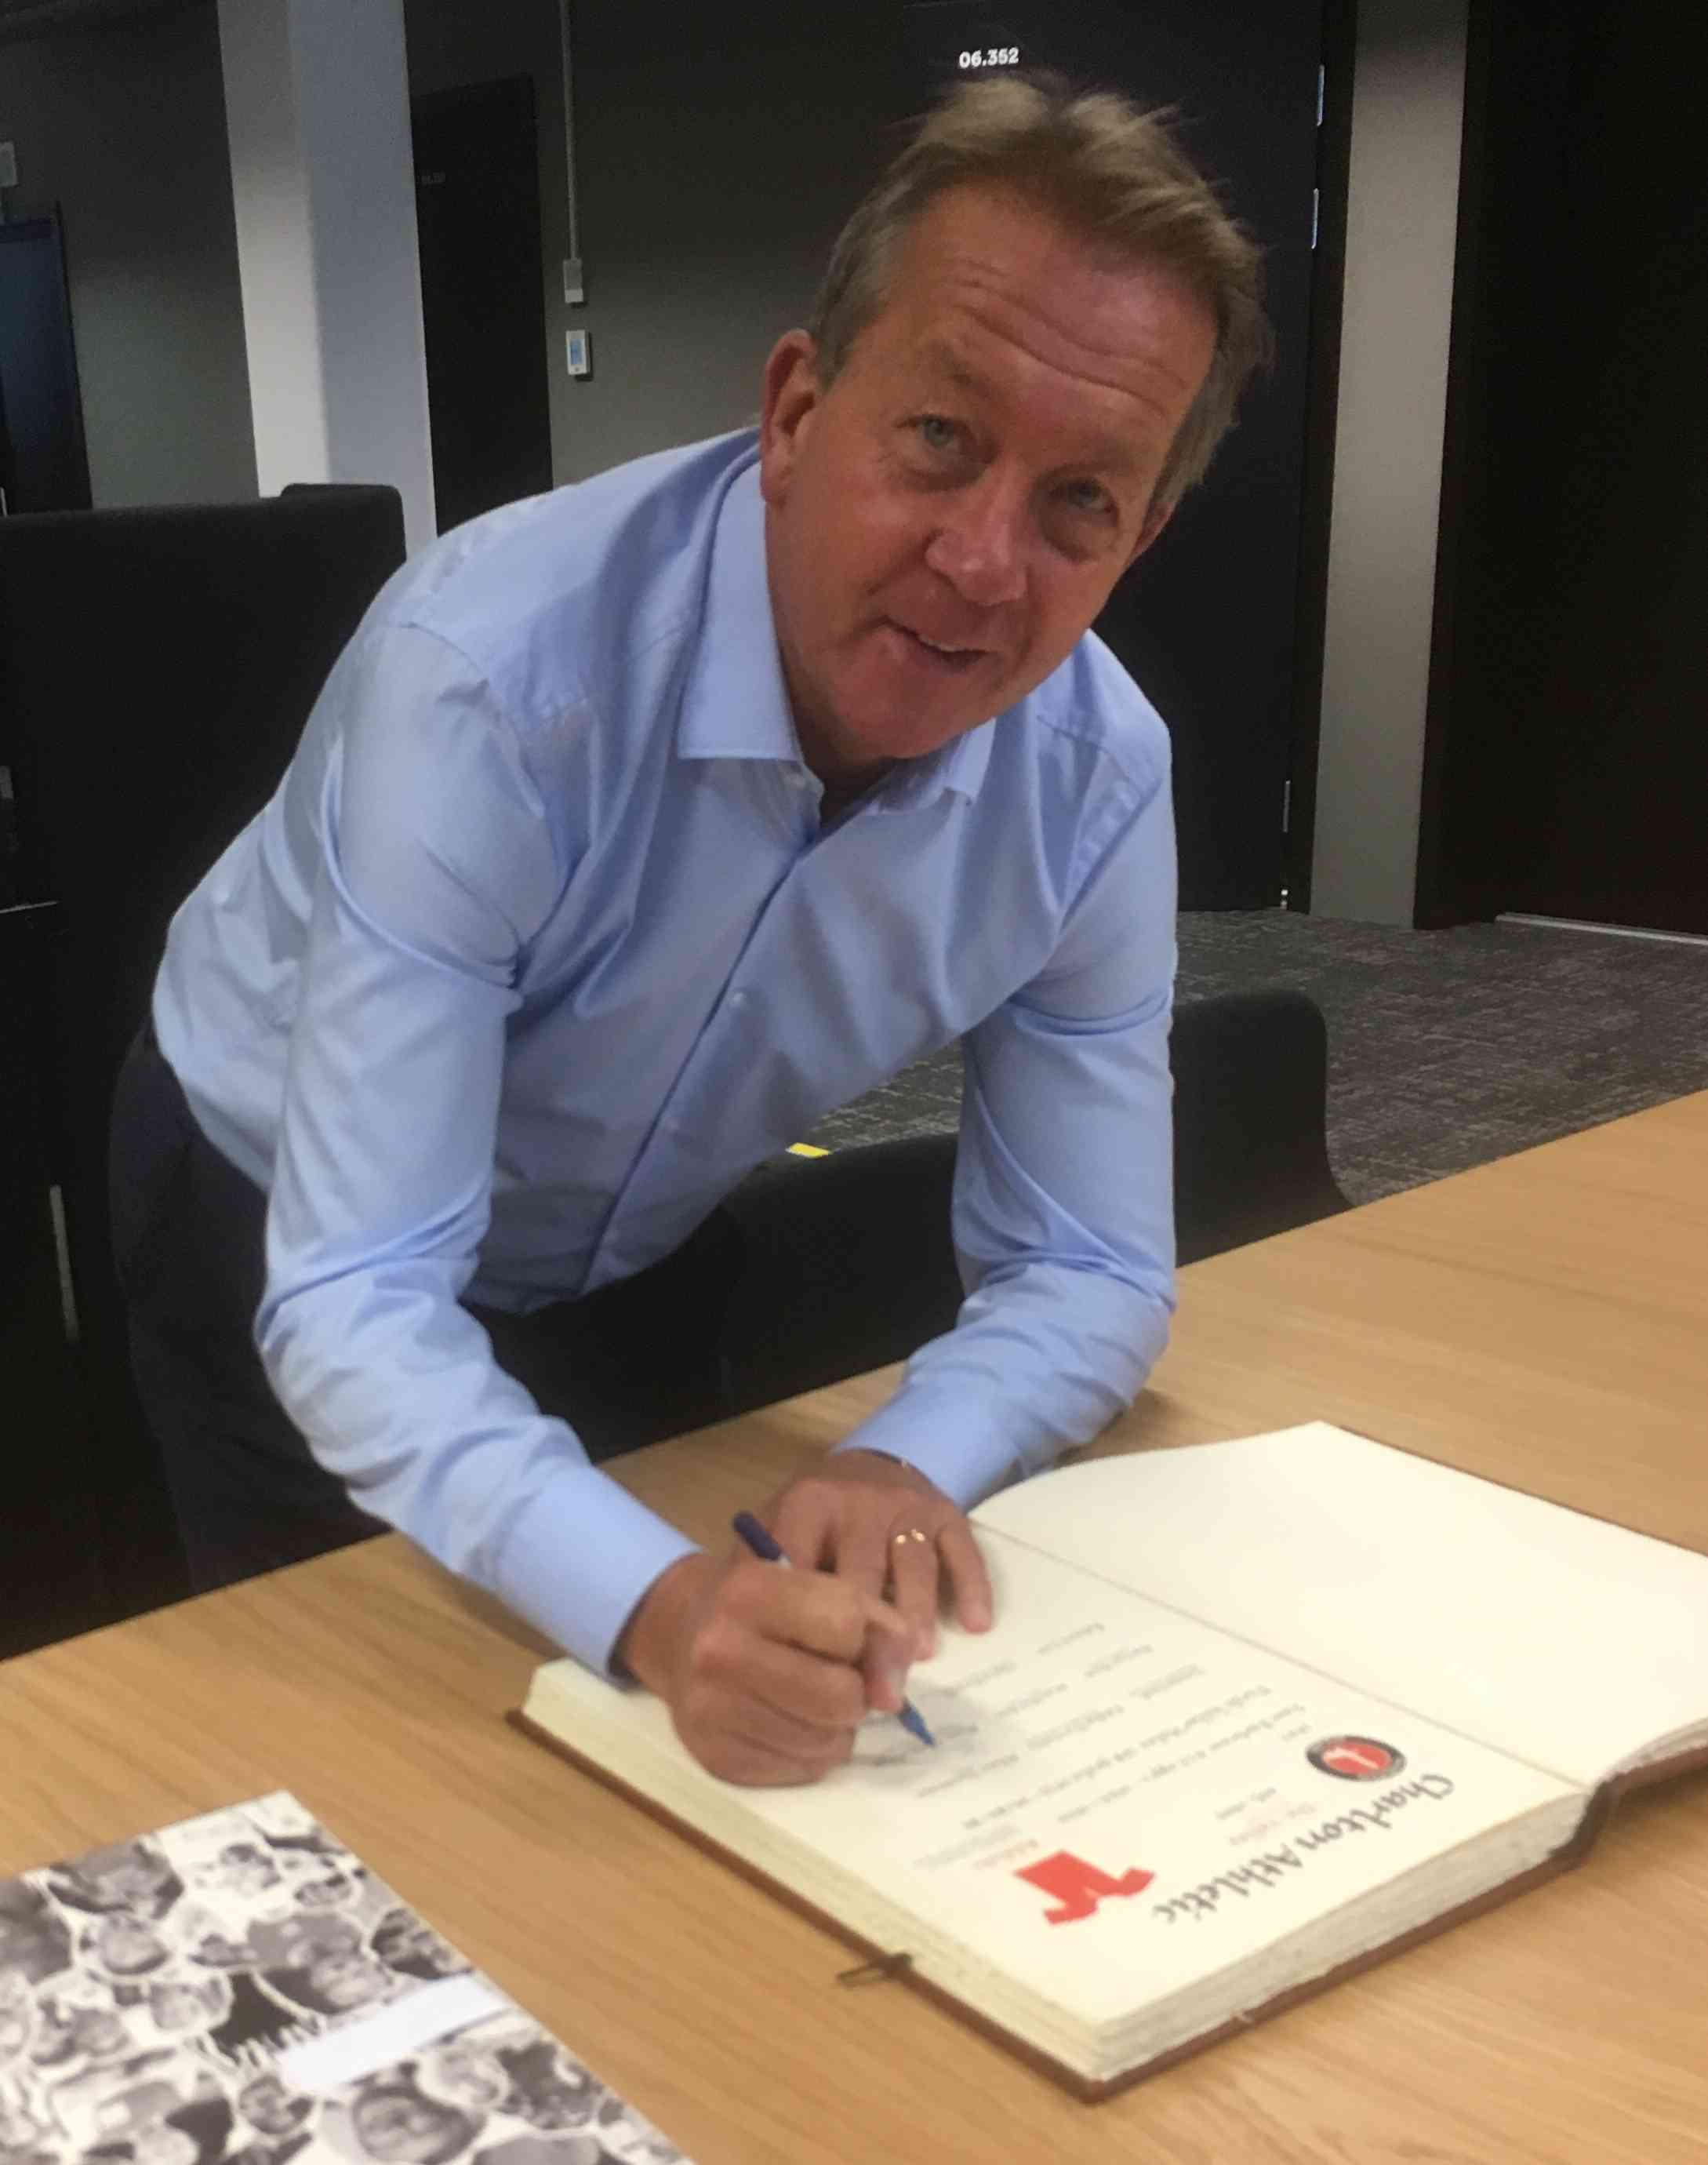 Charlton's managerlegend signed my book: Alan Curbishley